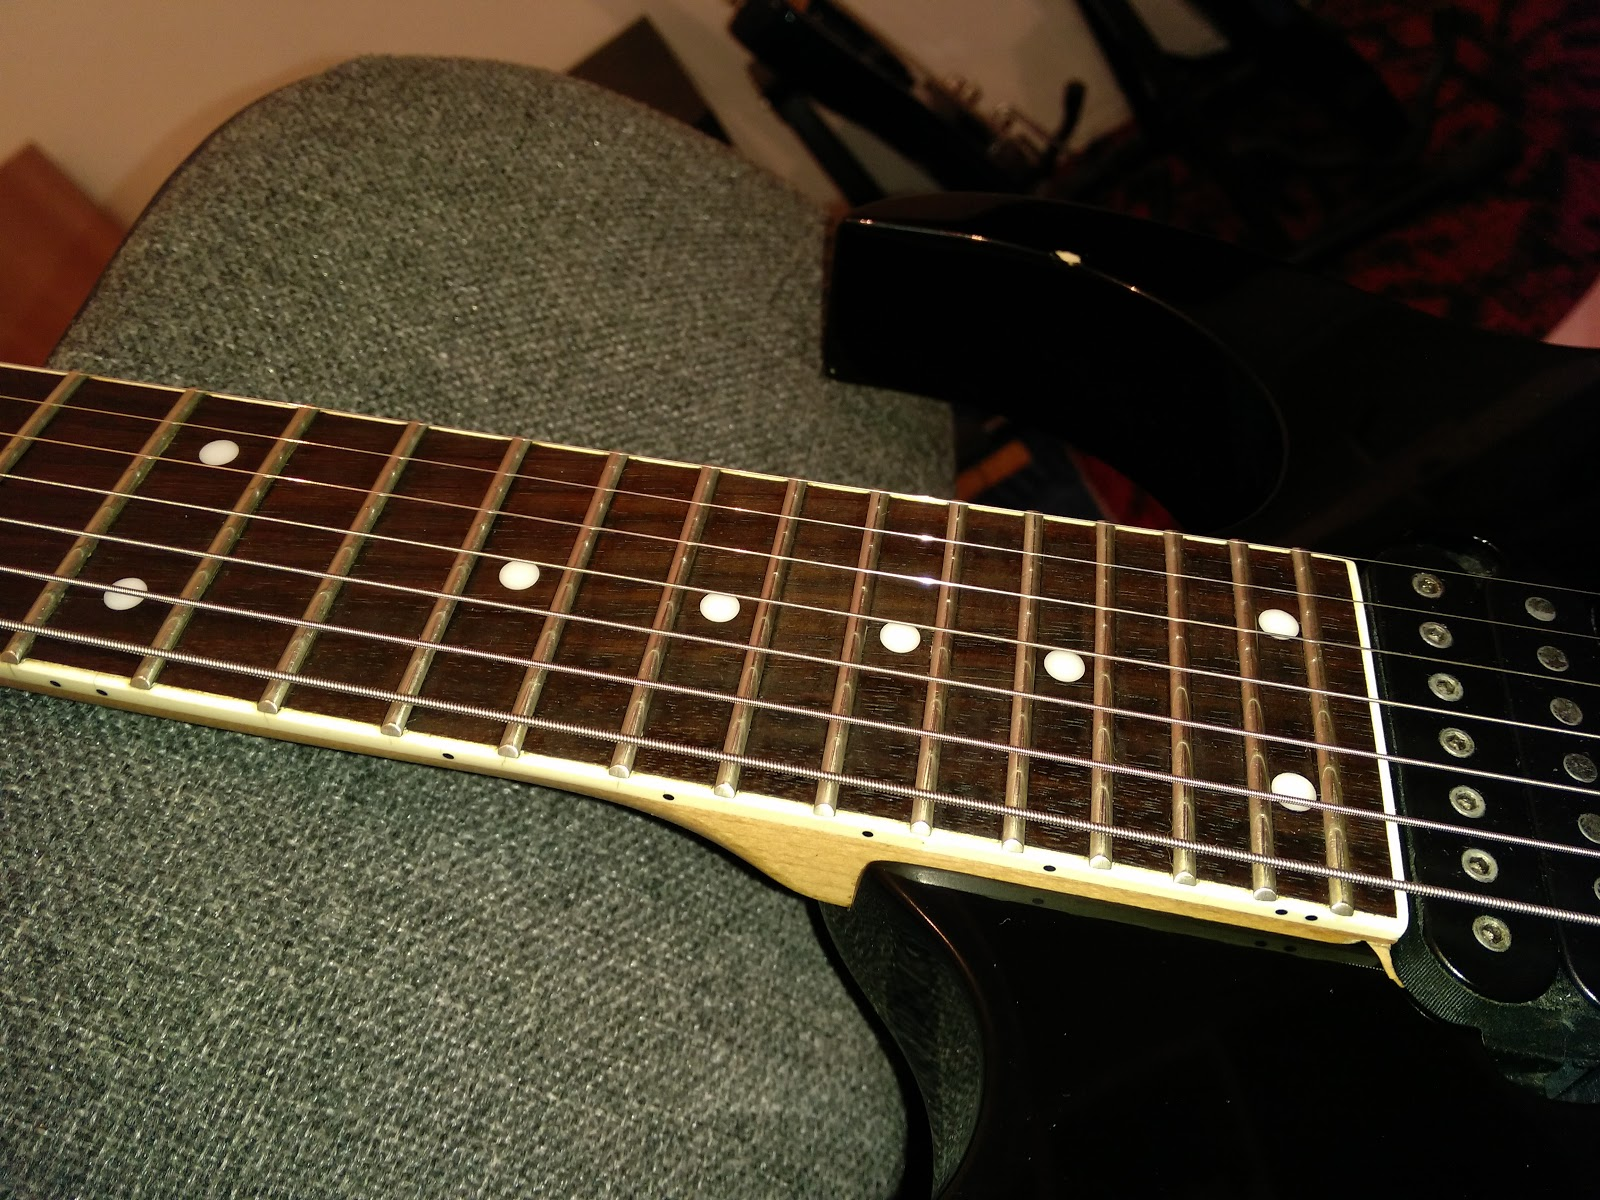 Ibanez Rg7321 Wiring Auto Electrical Diagram Hge Contraptions Rg 7321 Rewiring Reassembly Rust Removal Setup Green 7 String